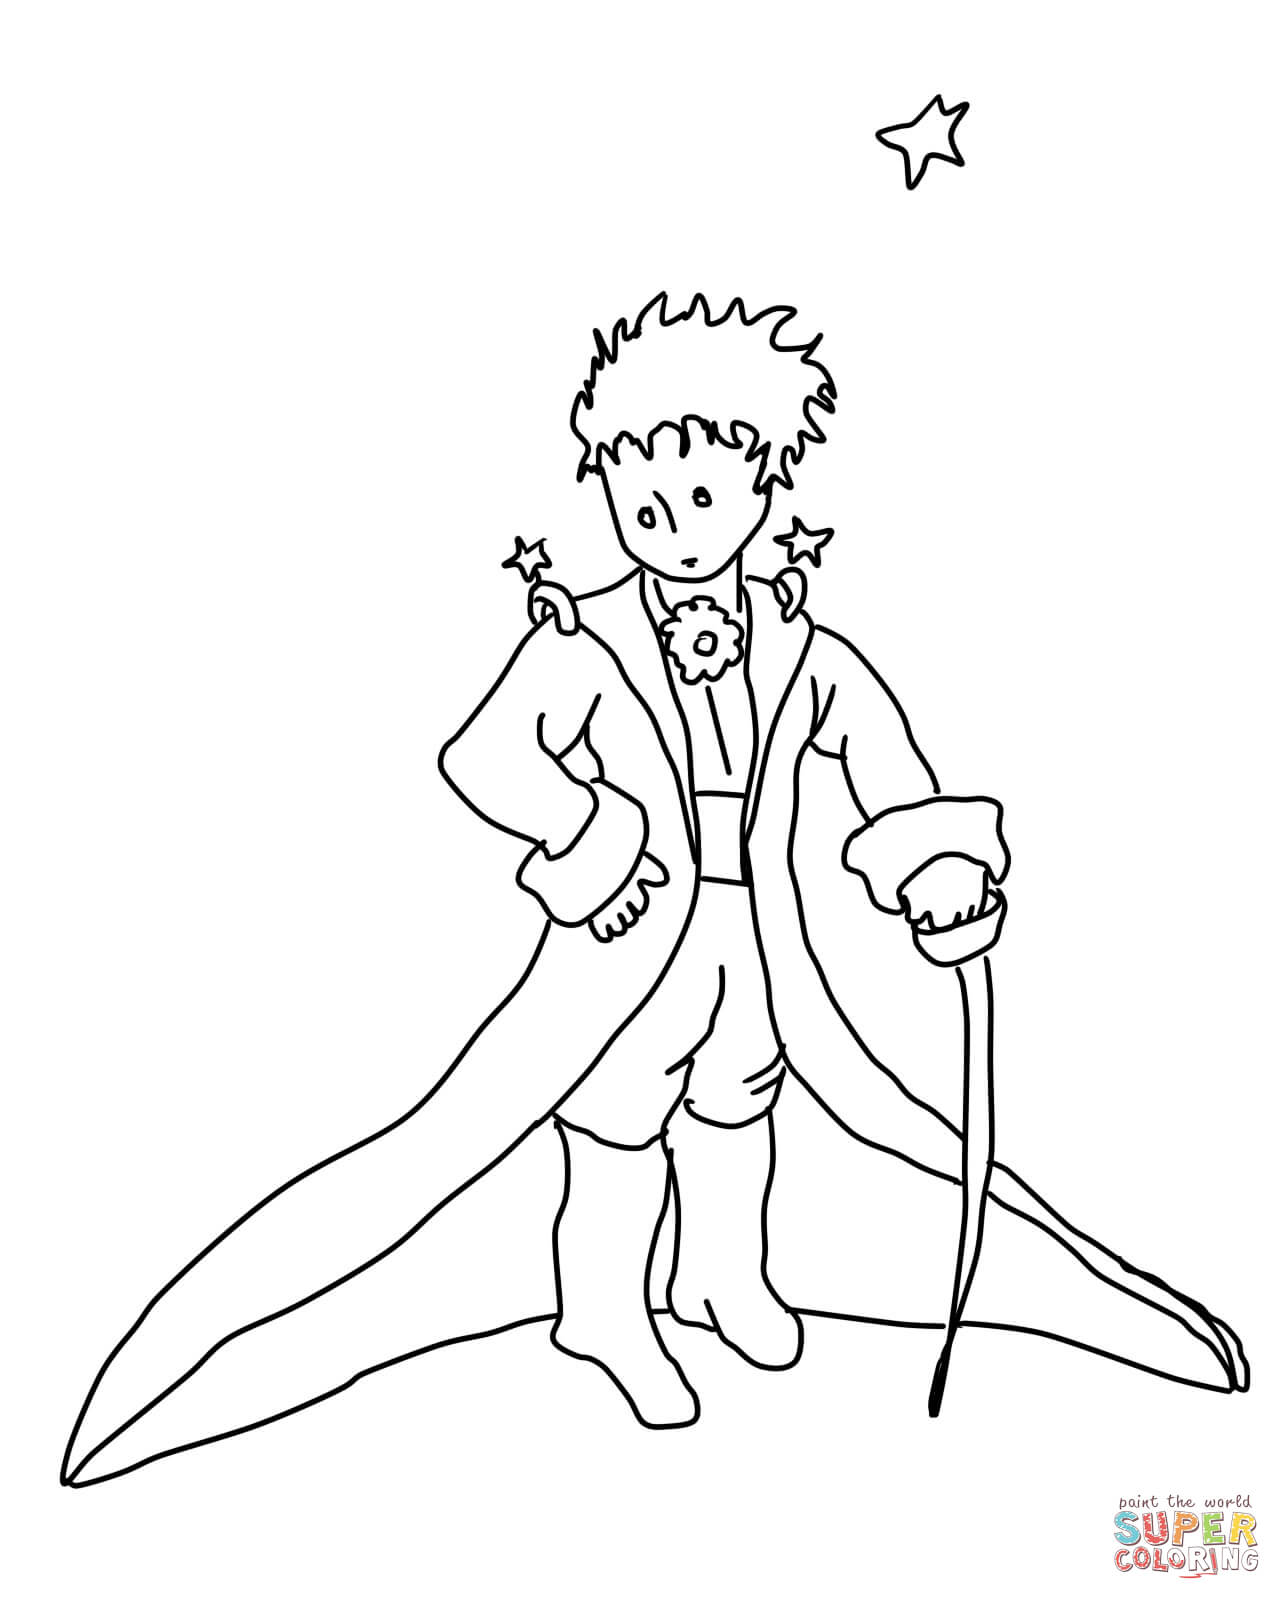 1282x1600 The Little Prince Coloring Page Free Printable Pages Best